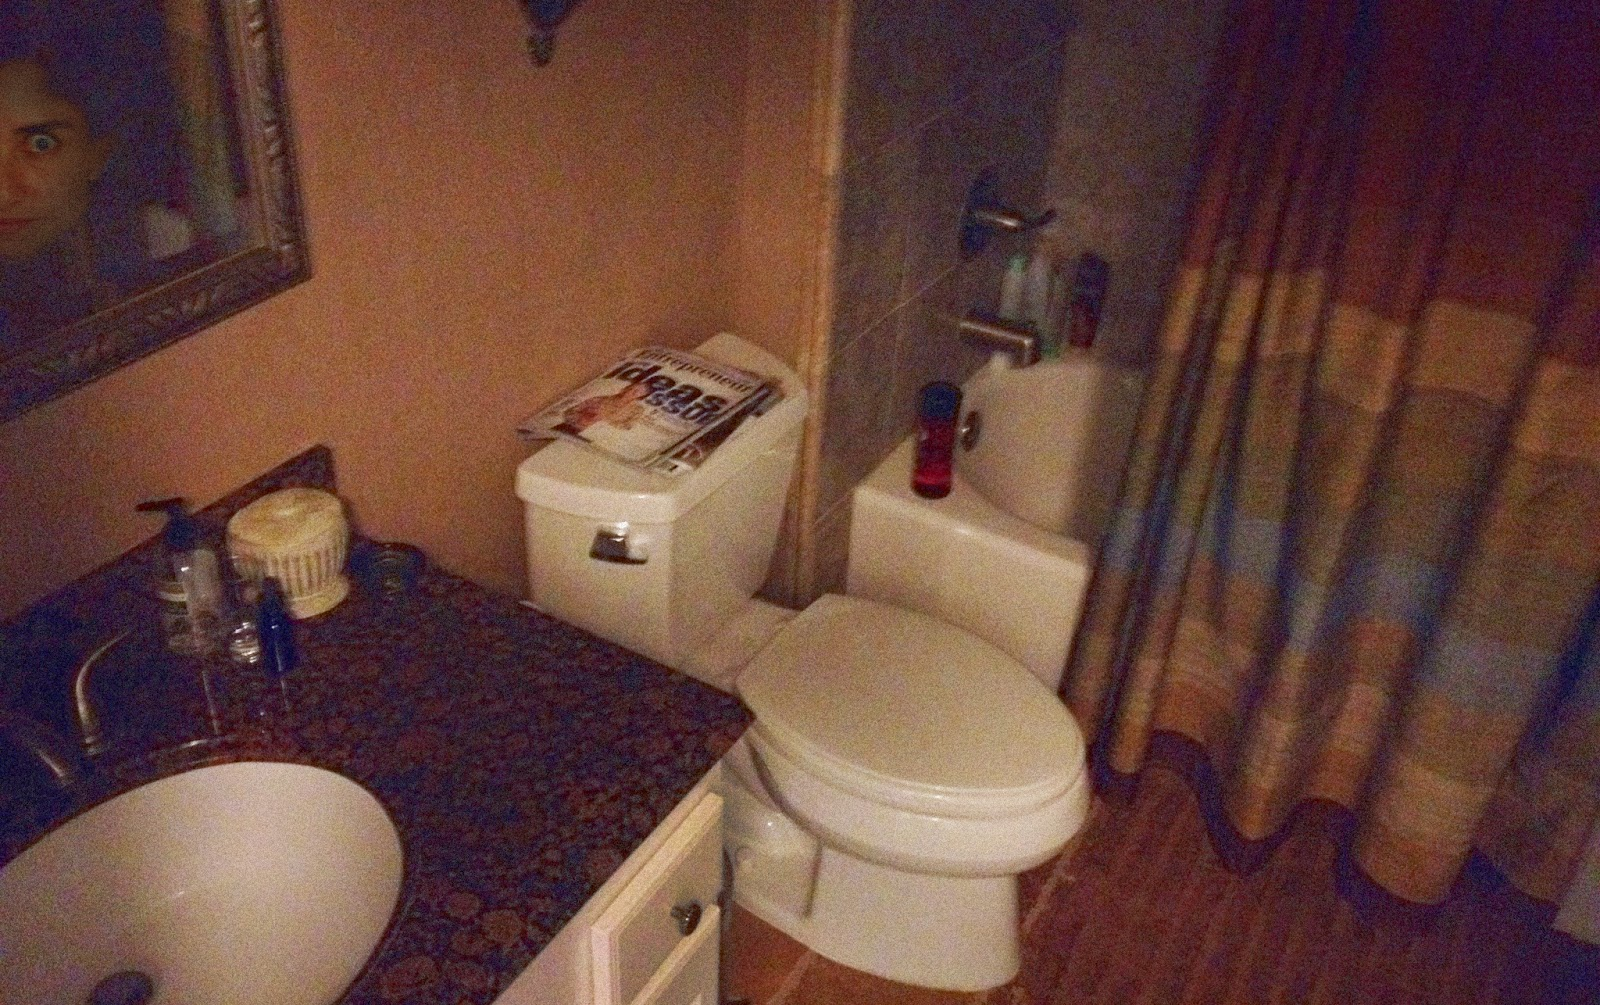 10 Reasons Why the Bathroom is the Scariest Room in the House